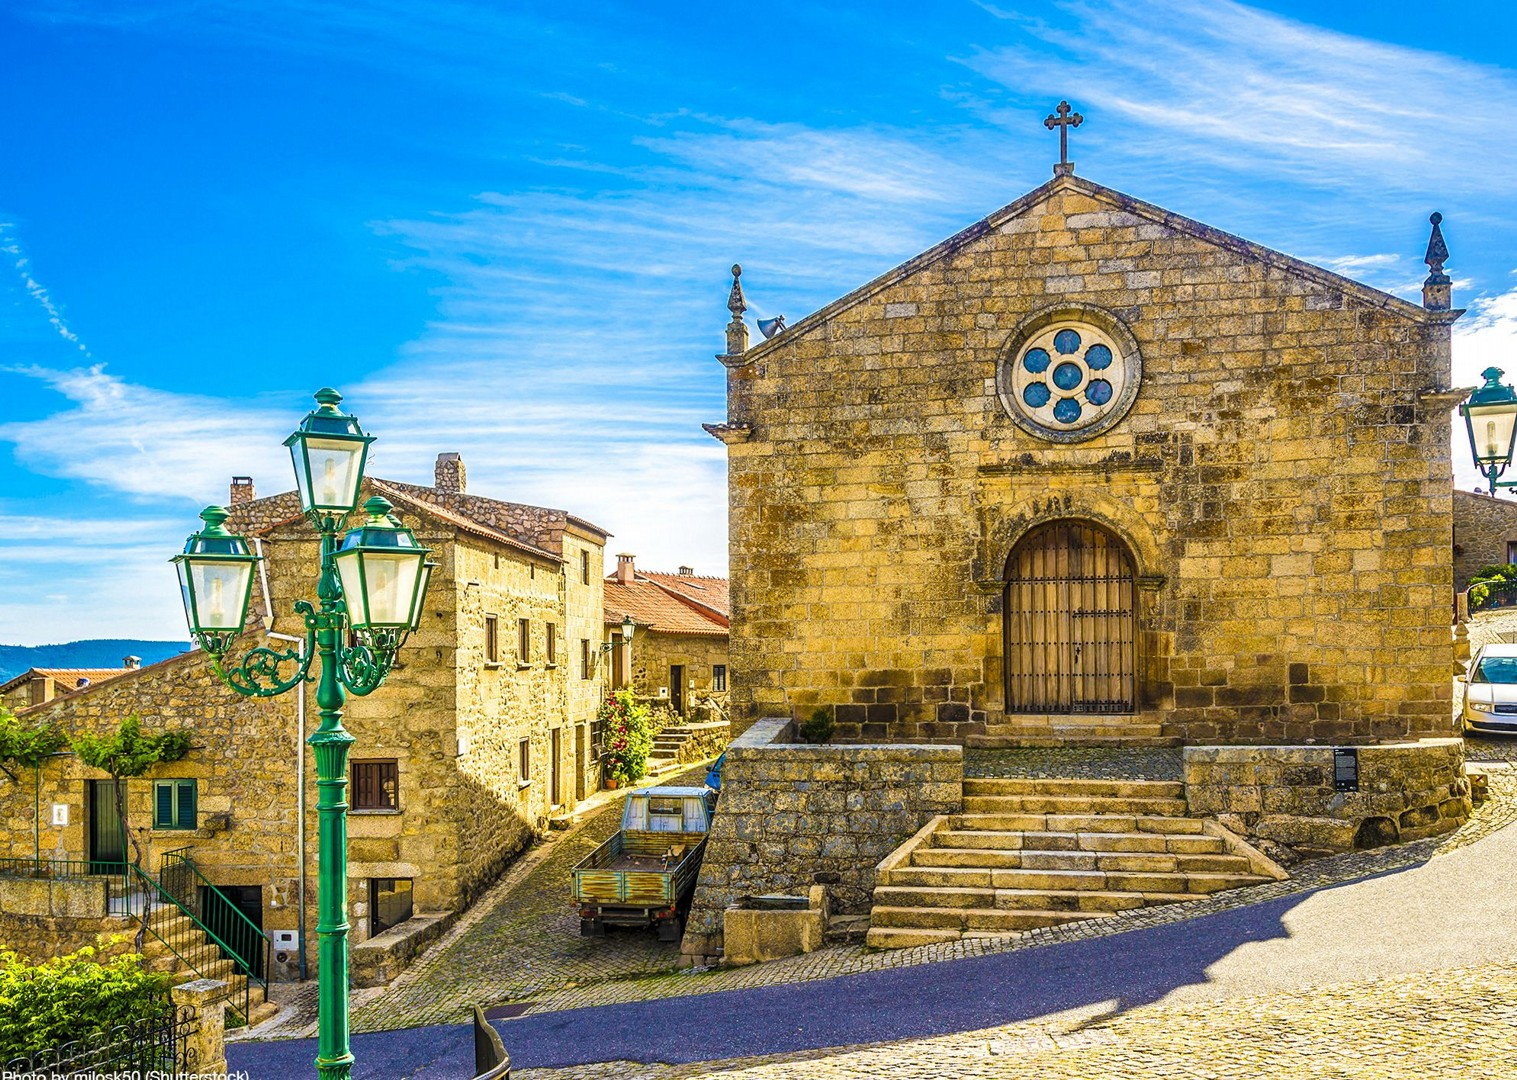 monsanto-portugal-culture-self-guided-medium-difficulty-cycling.jpg - Portugal - Historic Villages - Self-Guided Leisure Cycling Holiday - Leisure Cycling